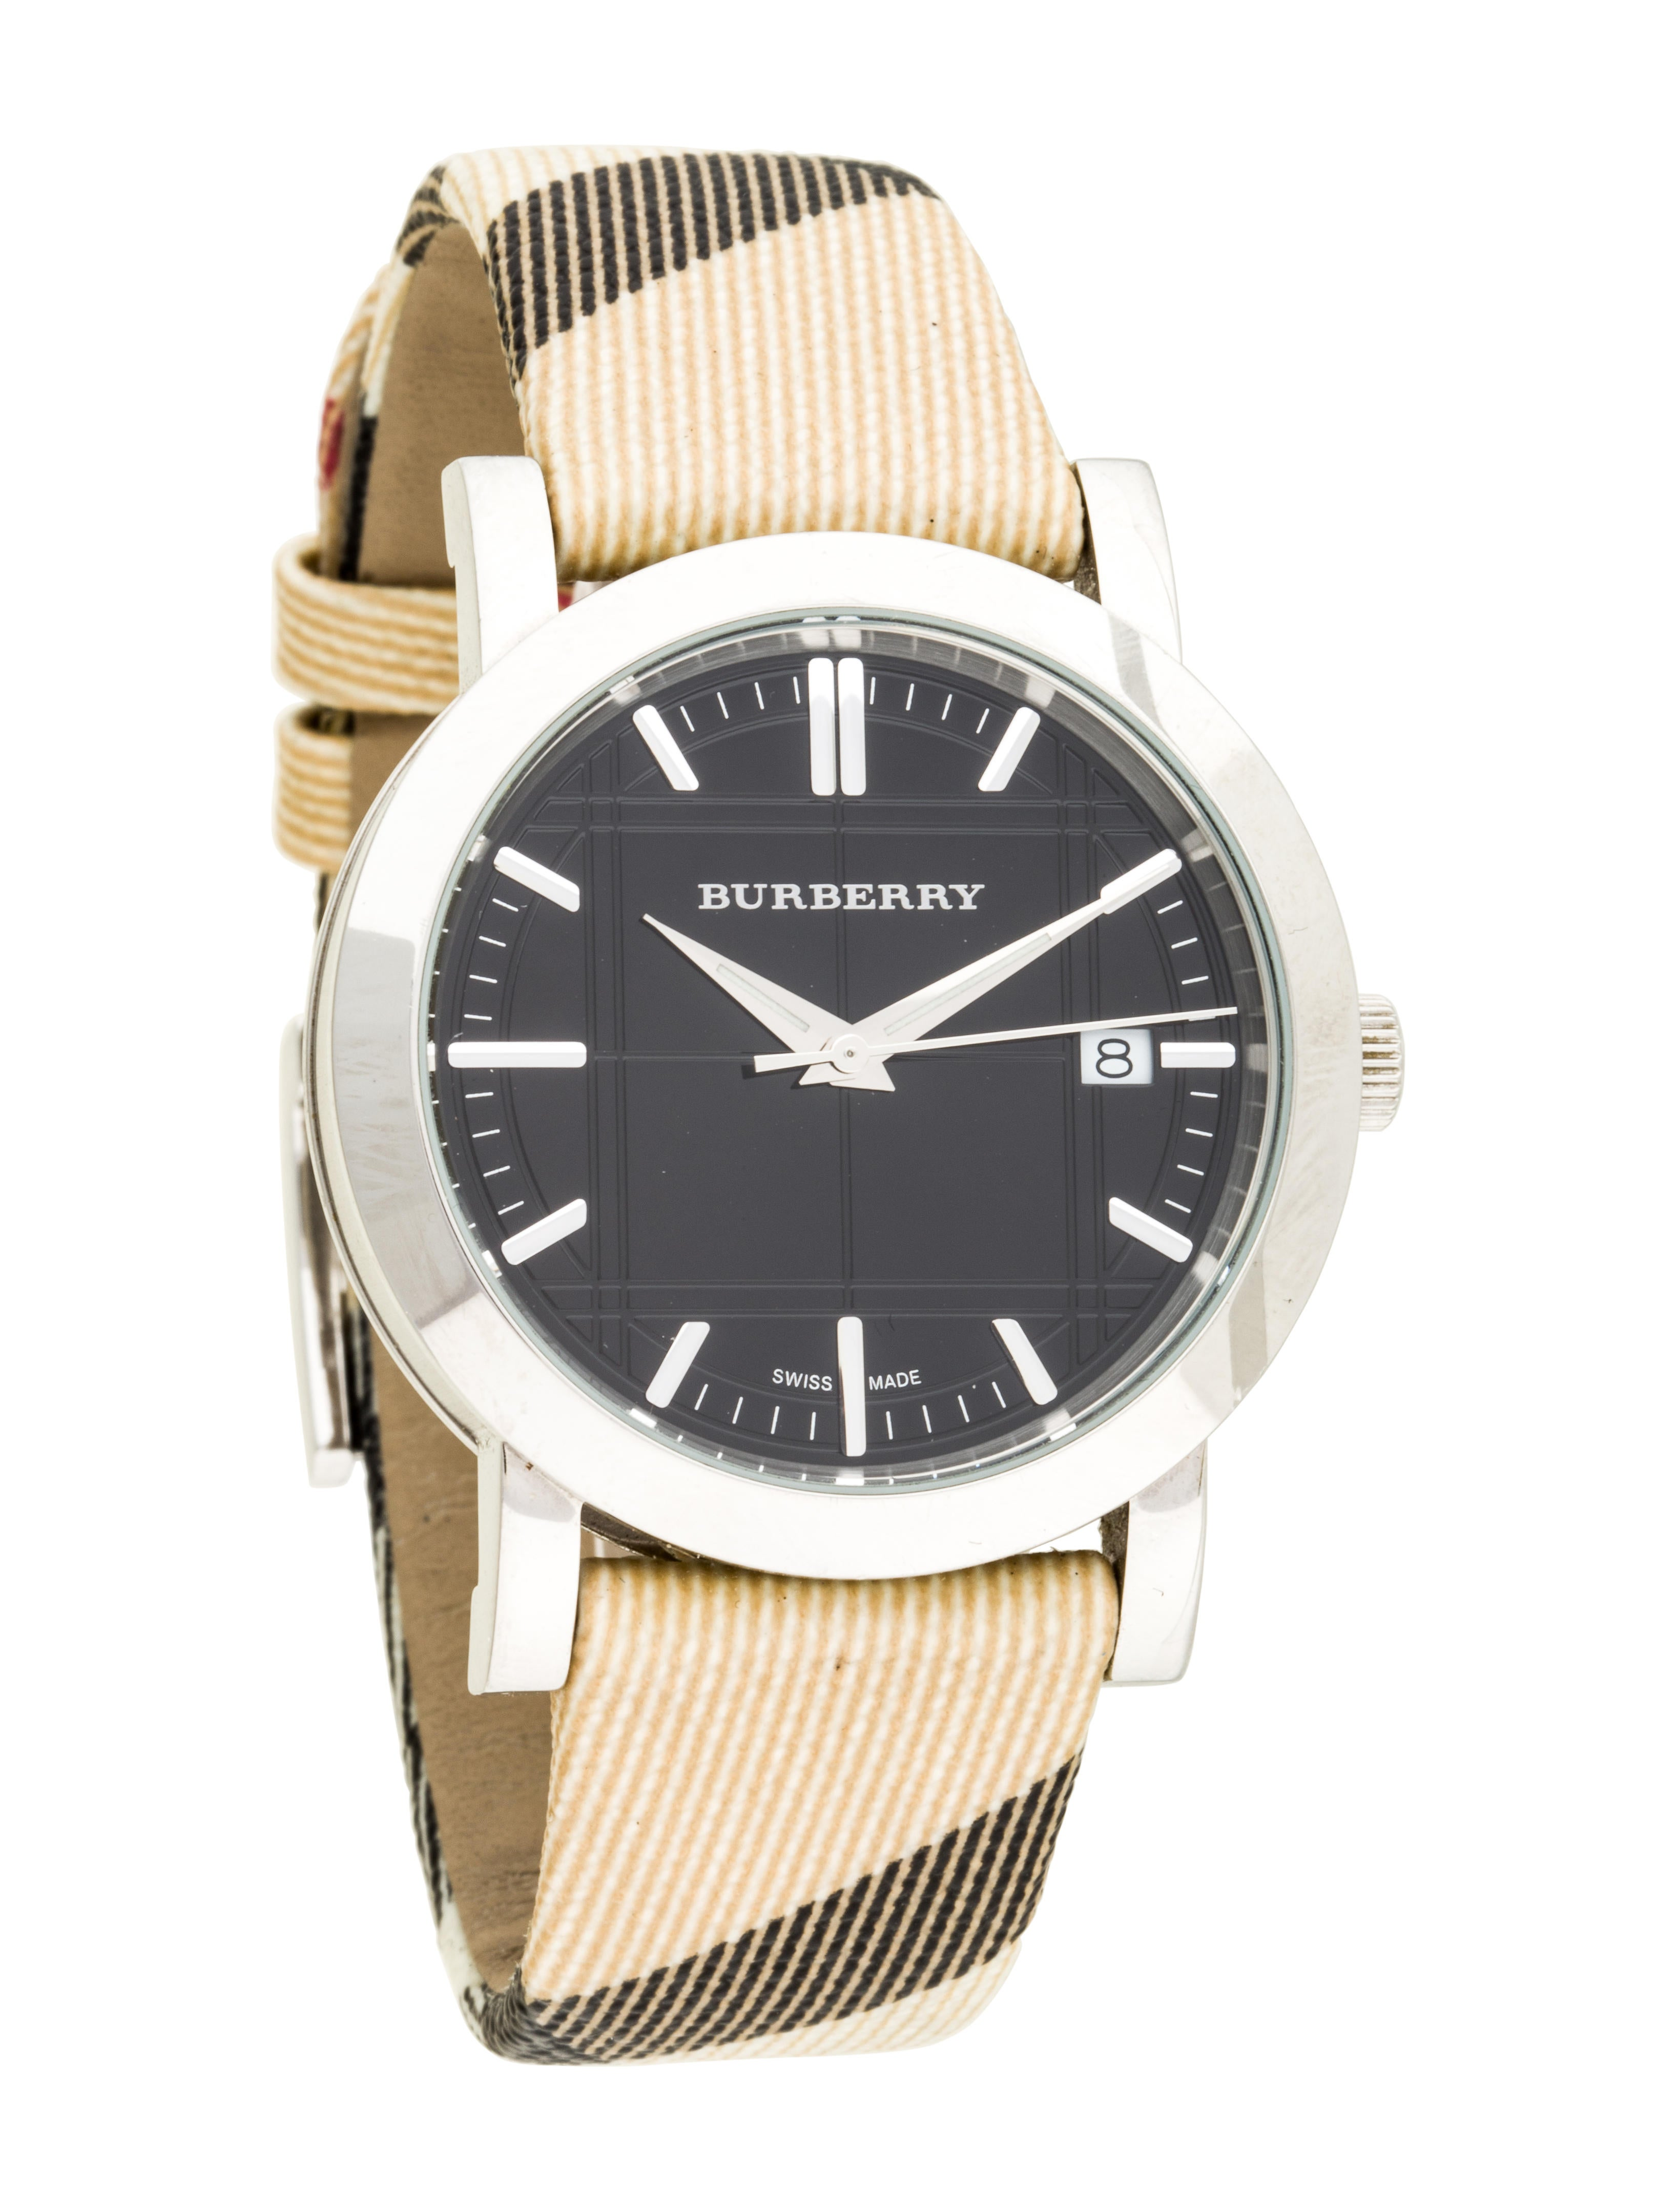 2b4bba0b37c6 Burberry Watch Serial Number Check - vegalosignal